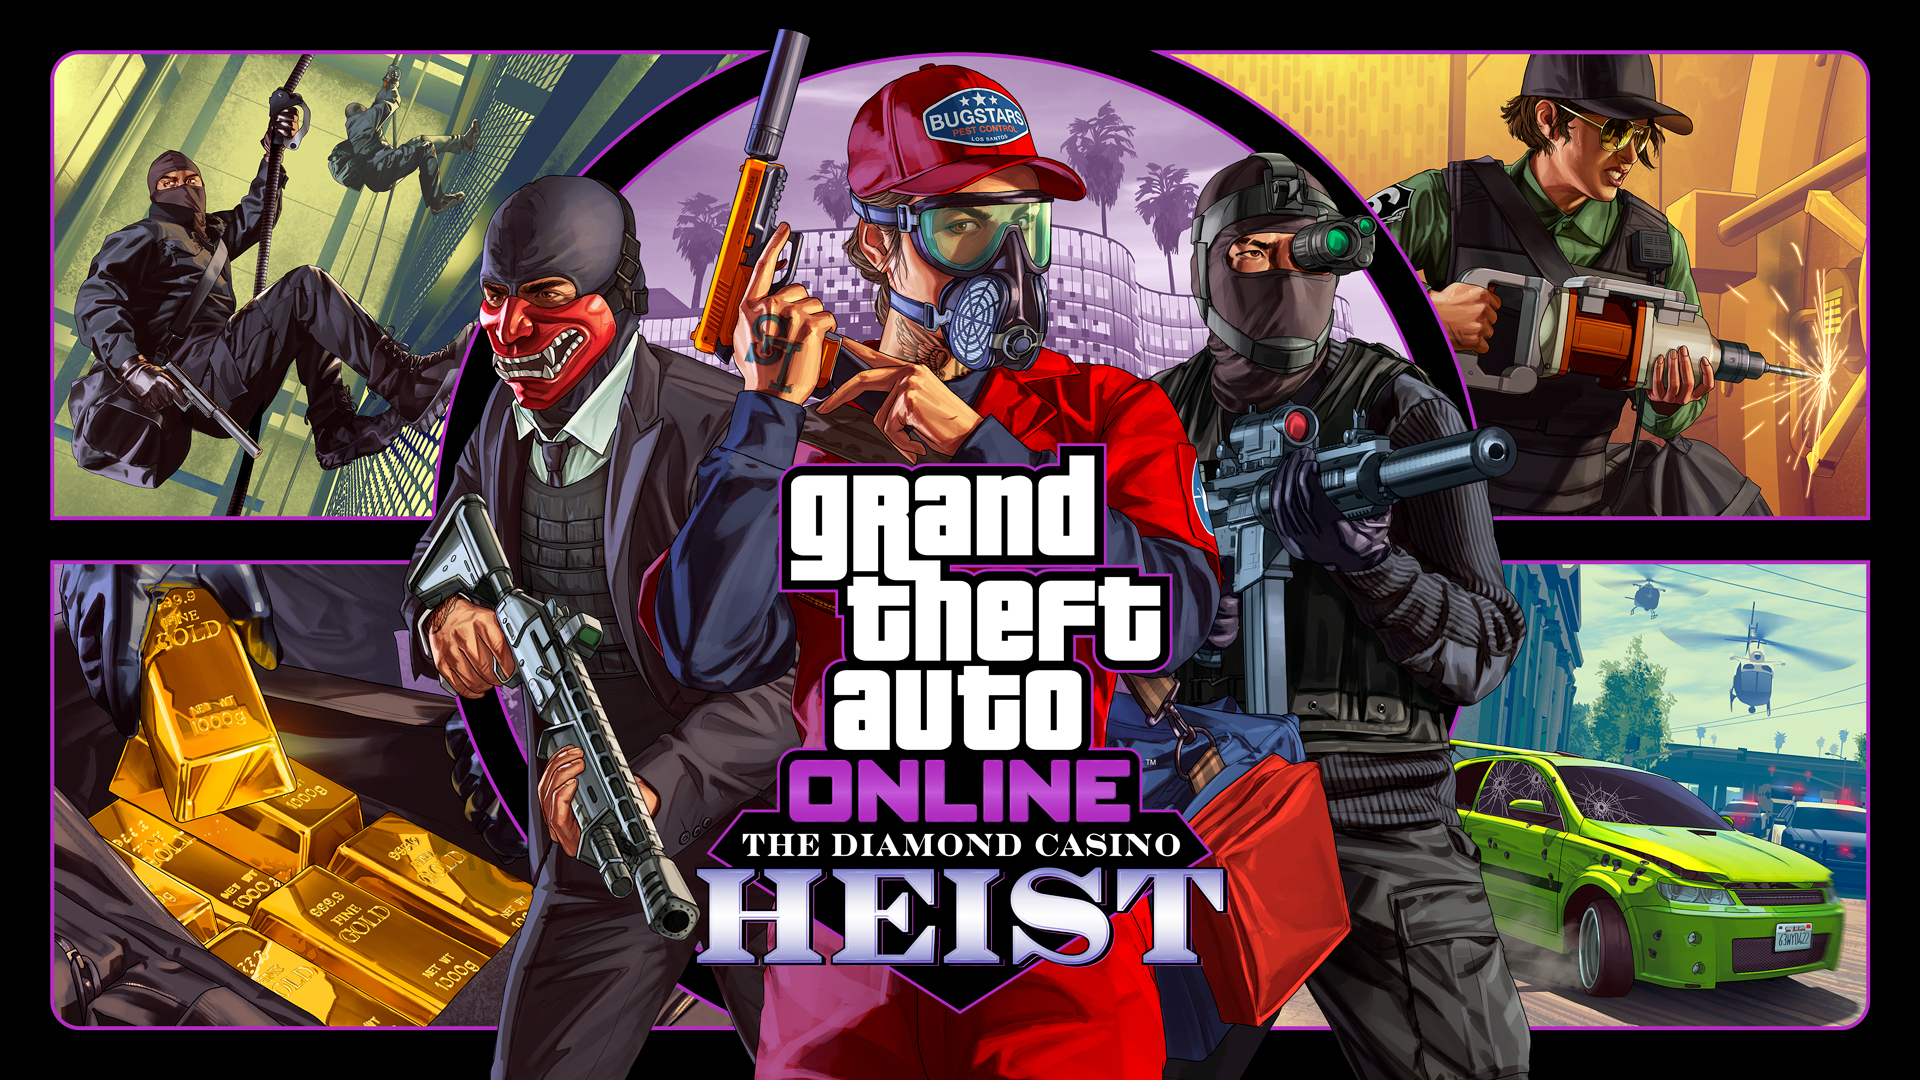 GTA Online gets Diamond Casino heist